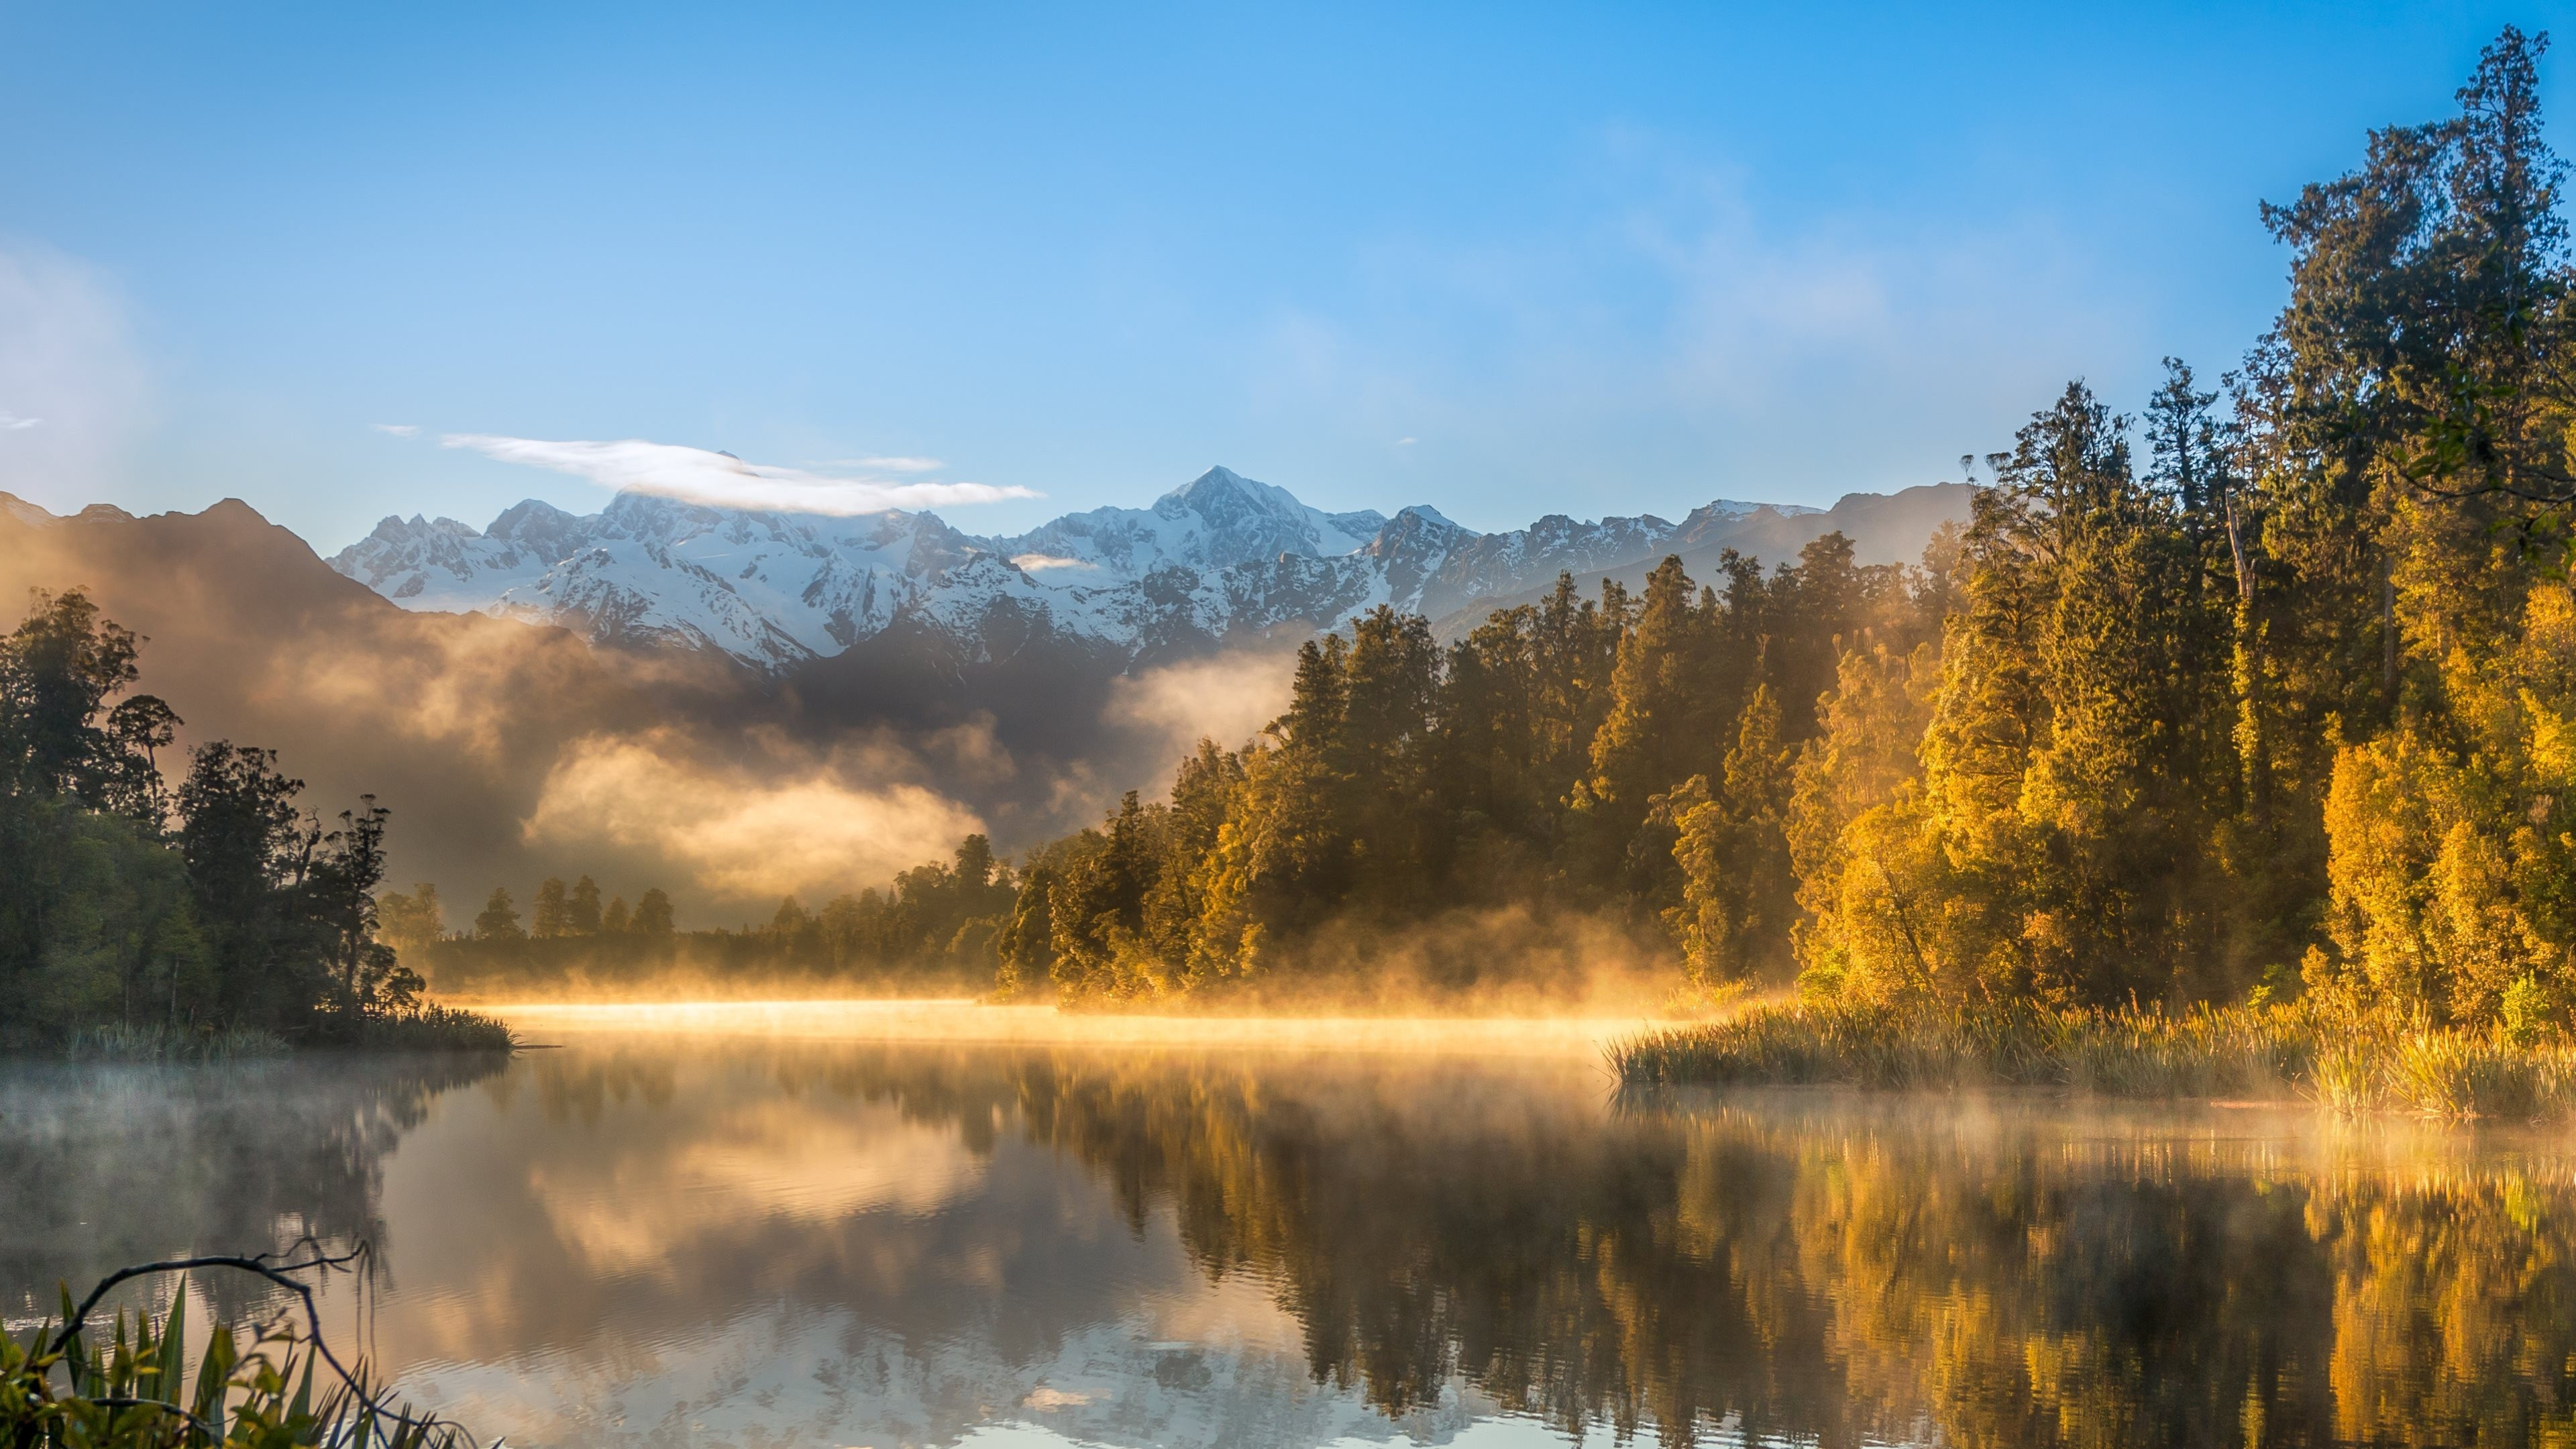 En Iyi 17 Fikir, Ultra Hd Backgrounds Pinterest'te - New Zealand Lake Matheson , HD Wallpaper & Backgrounds